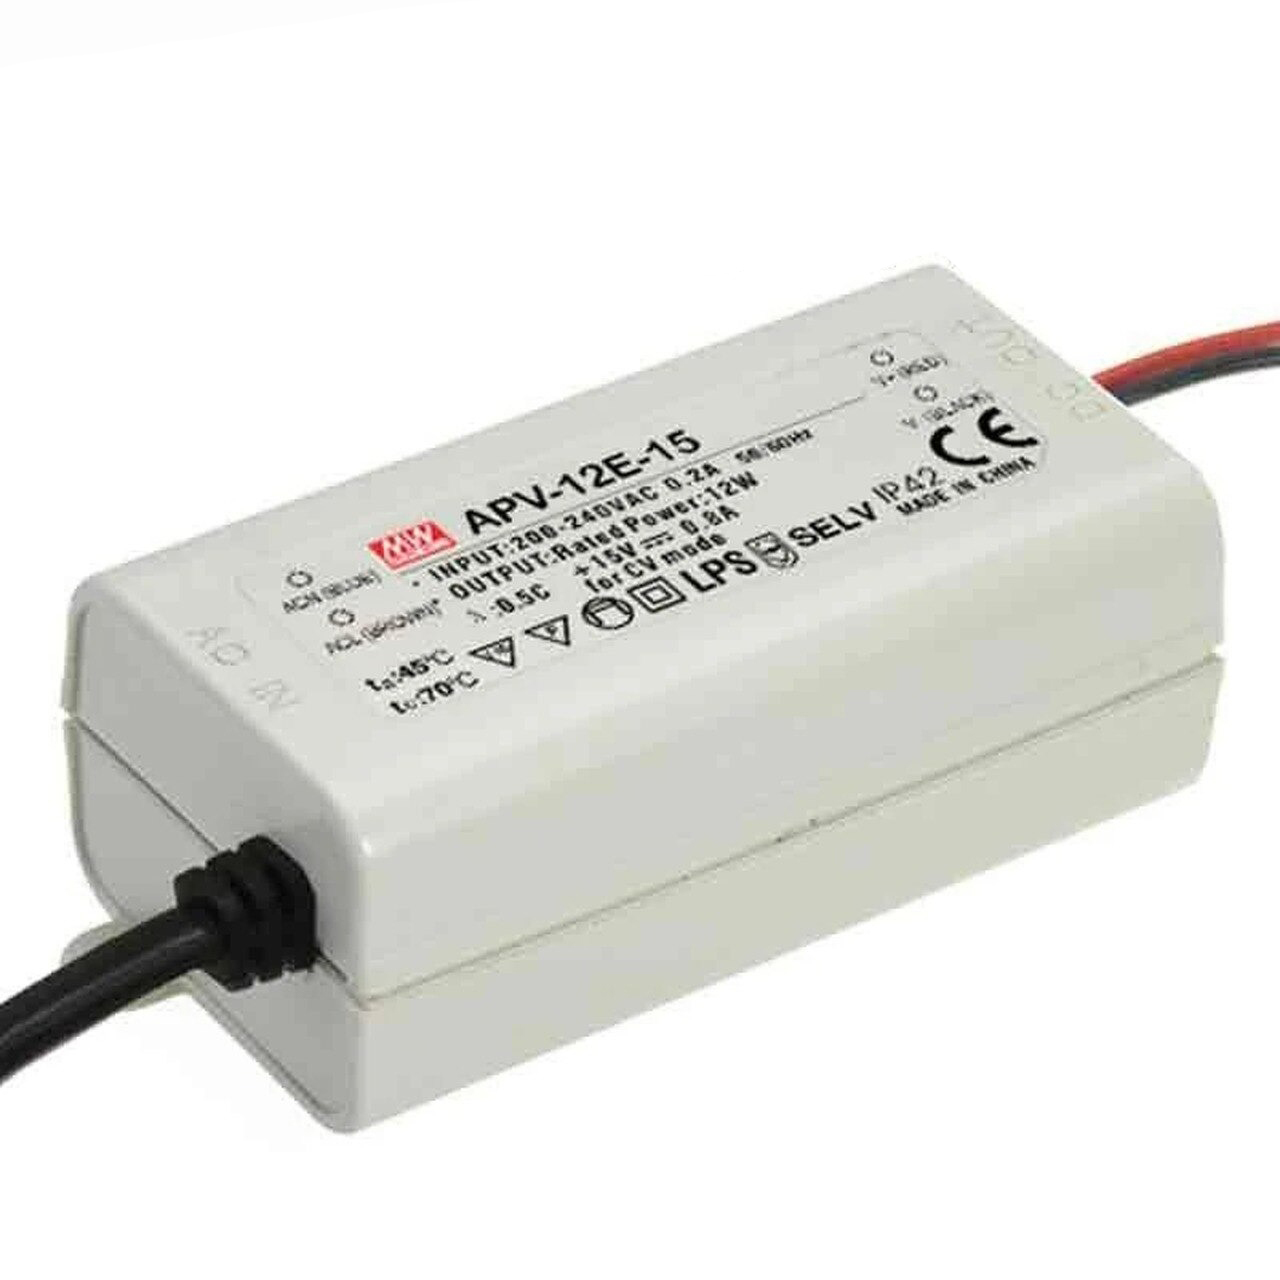 5V Constant Voltage Drivers